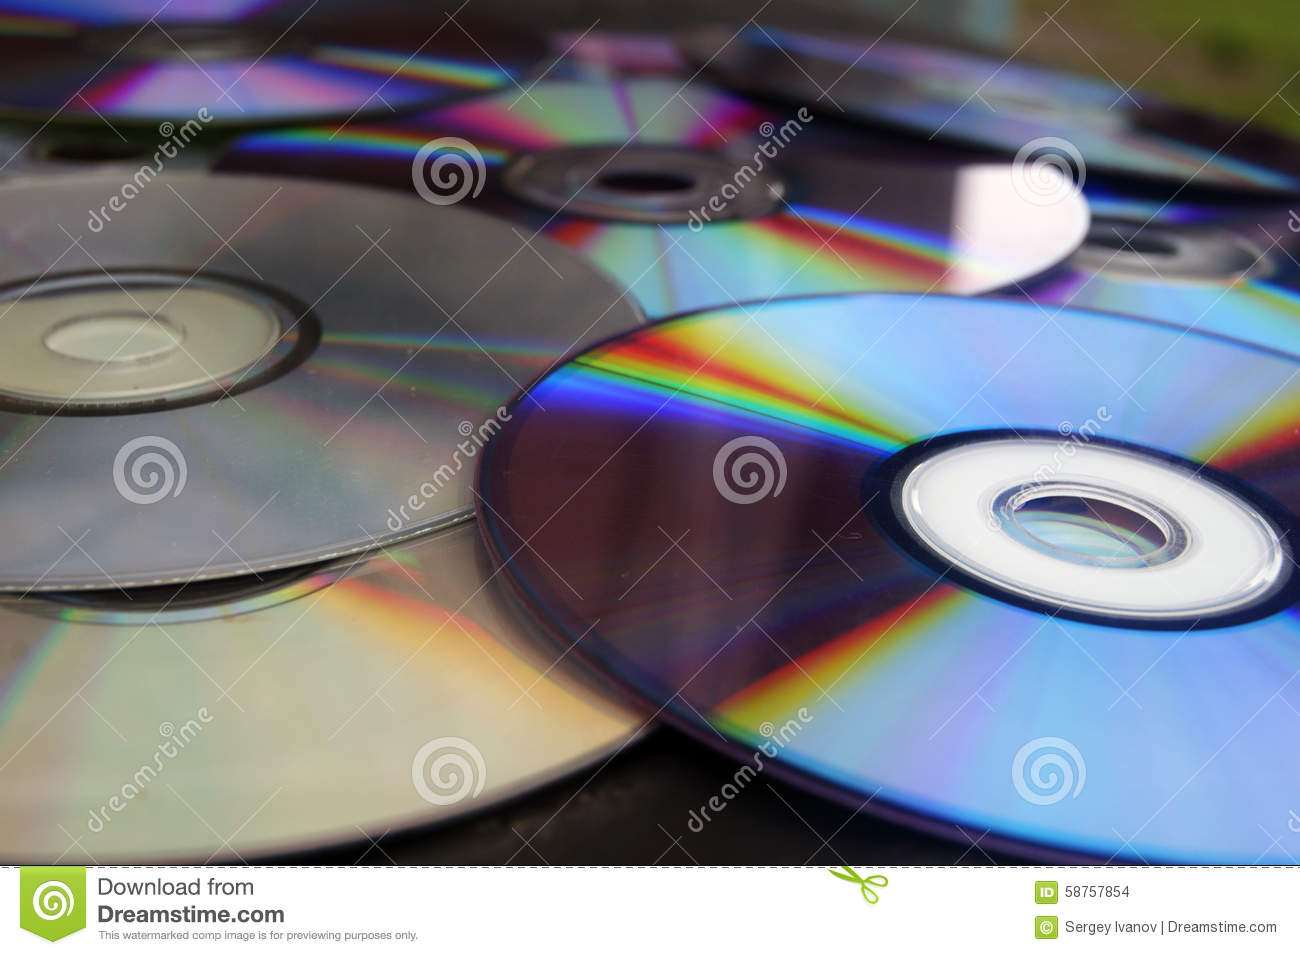 The cd rom a computer storing data